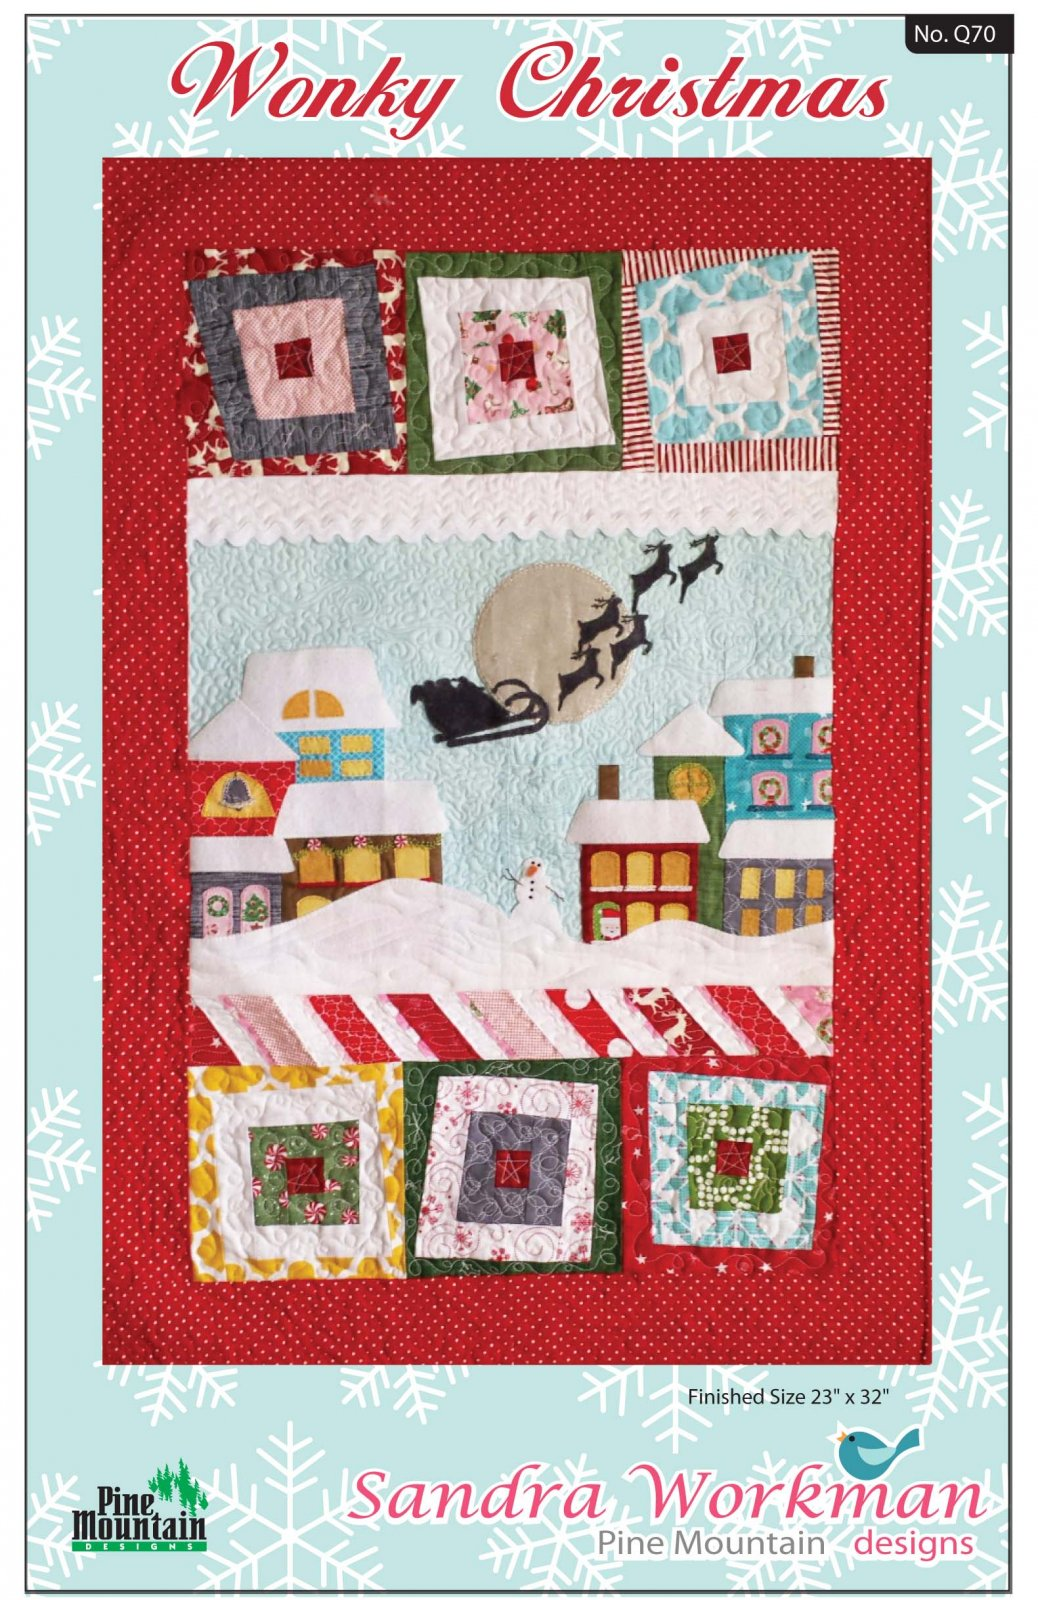 Q70 Wonky Christmas quilt pattern